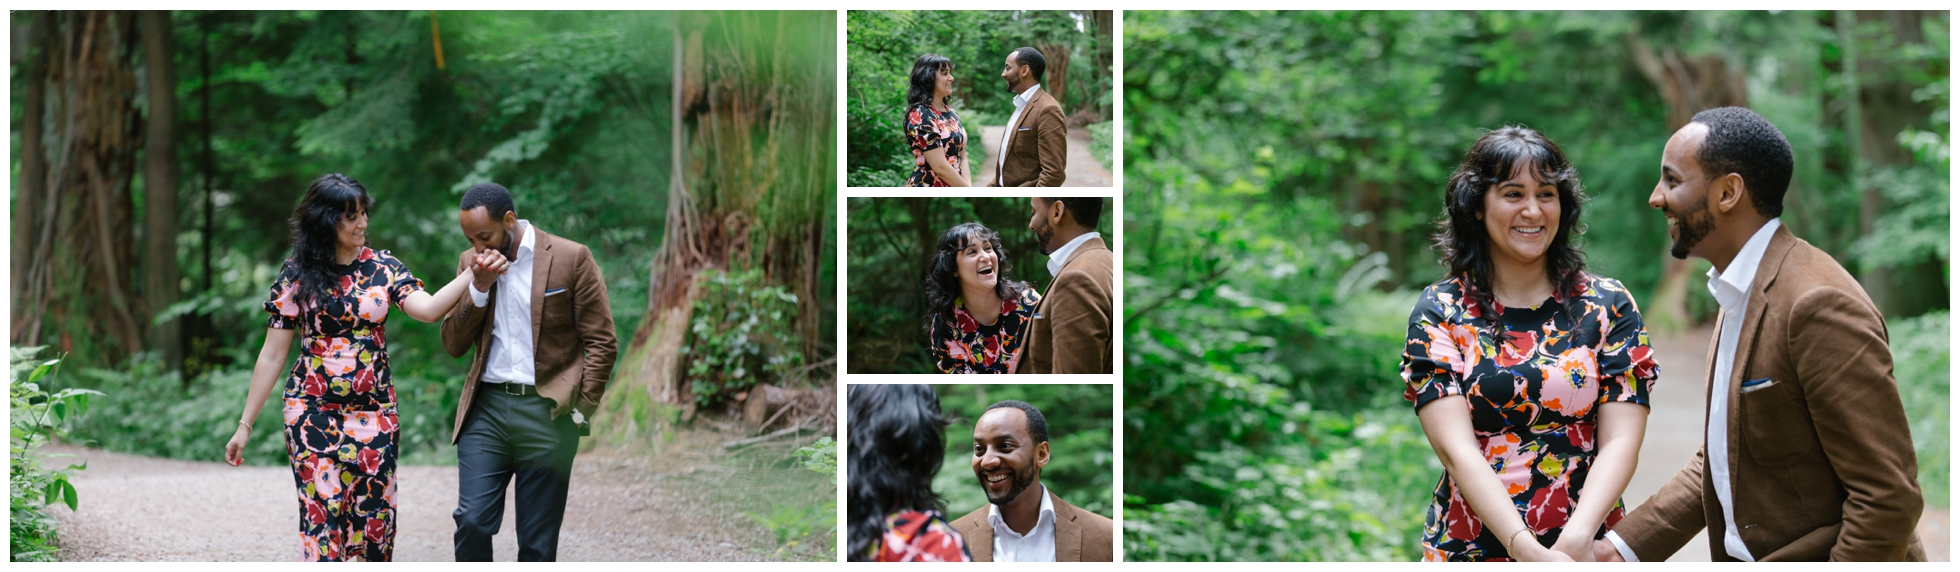 Tara and Petros Engagement Session (Life by Selena Photography)_0052.jpg